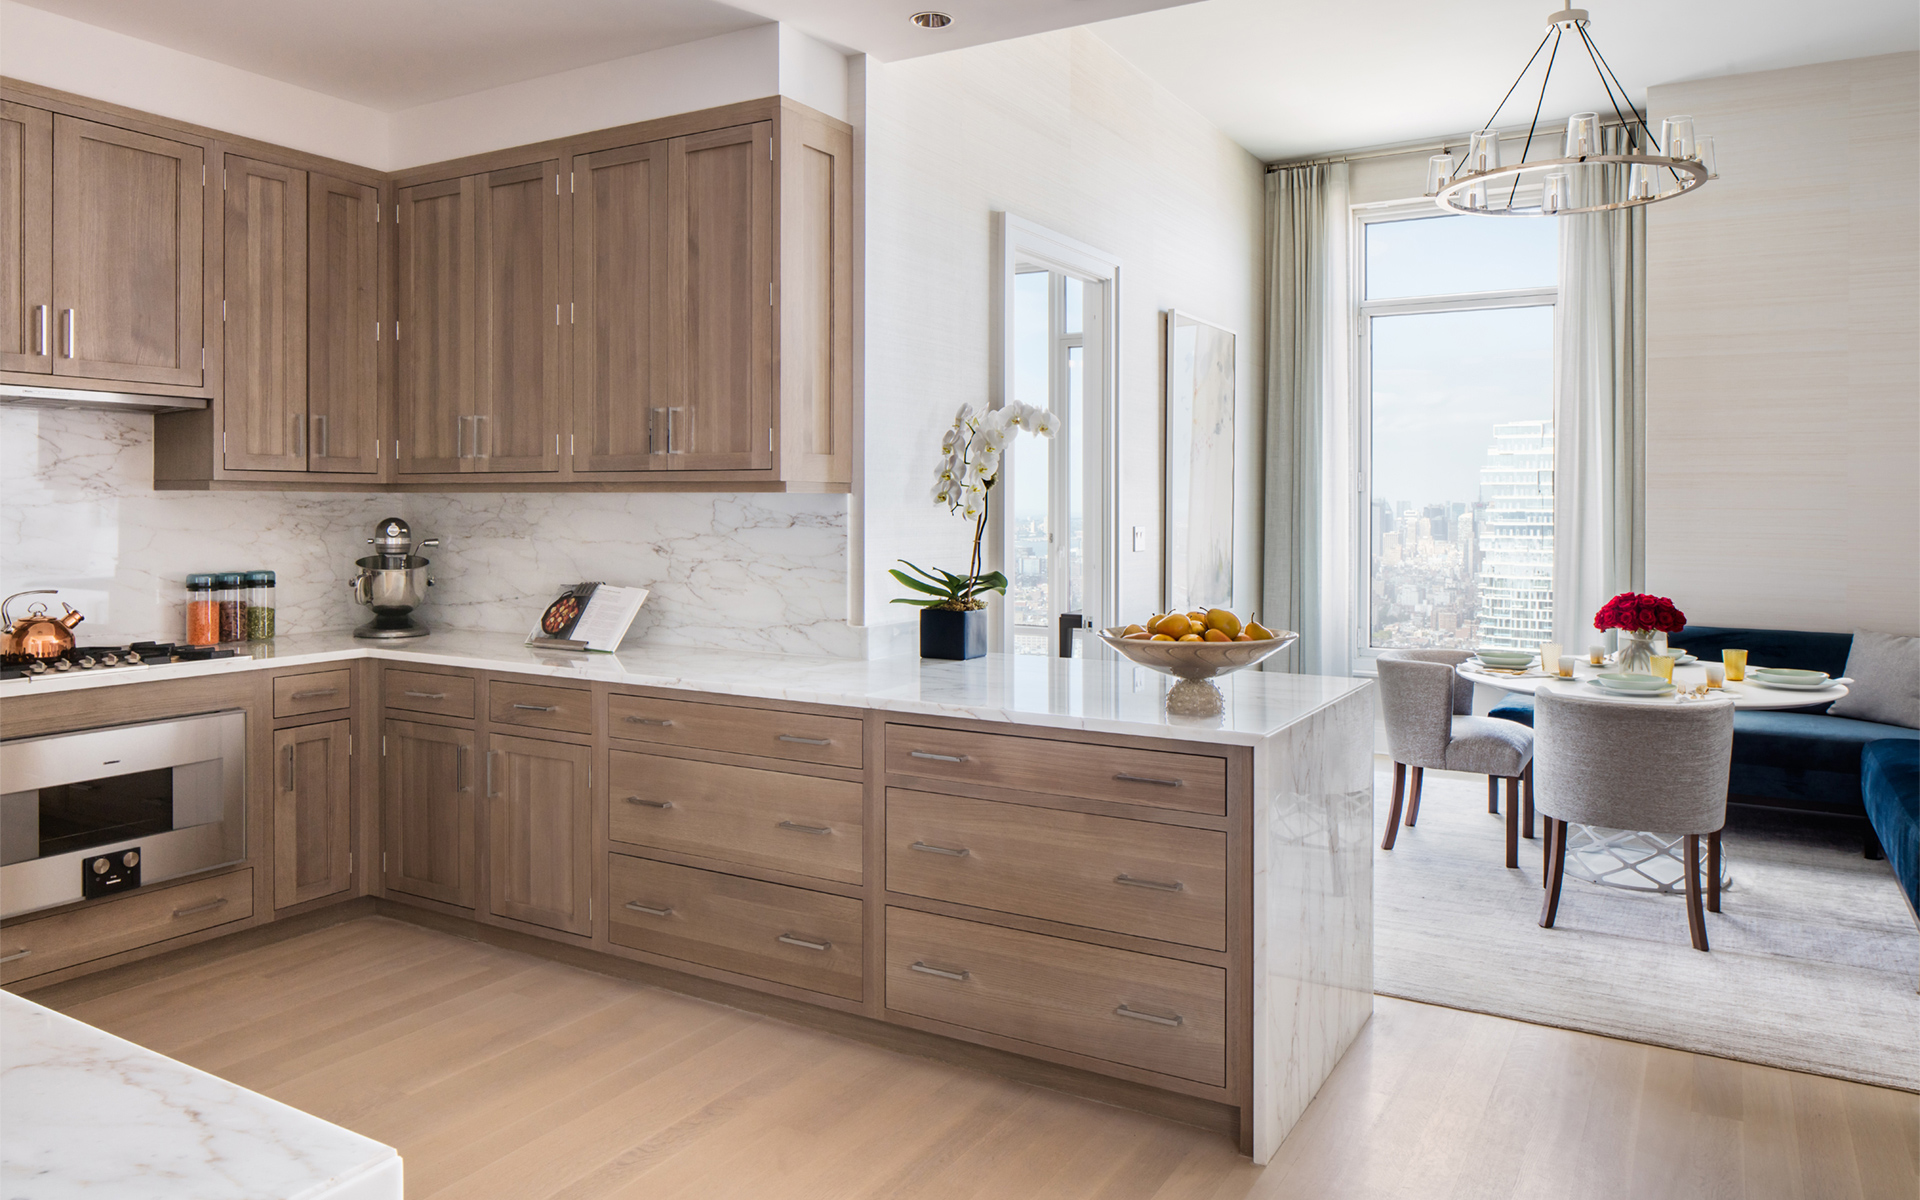 Solid white oak cabinetry by Bilotta, Colorado White marble countertop and backsplash, and appliances by Gaggenau, all with a spectacular view.